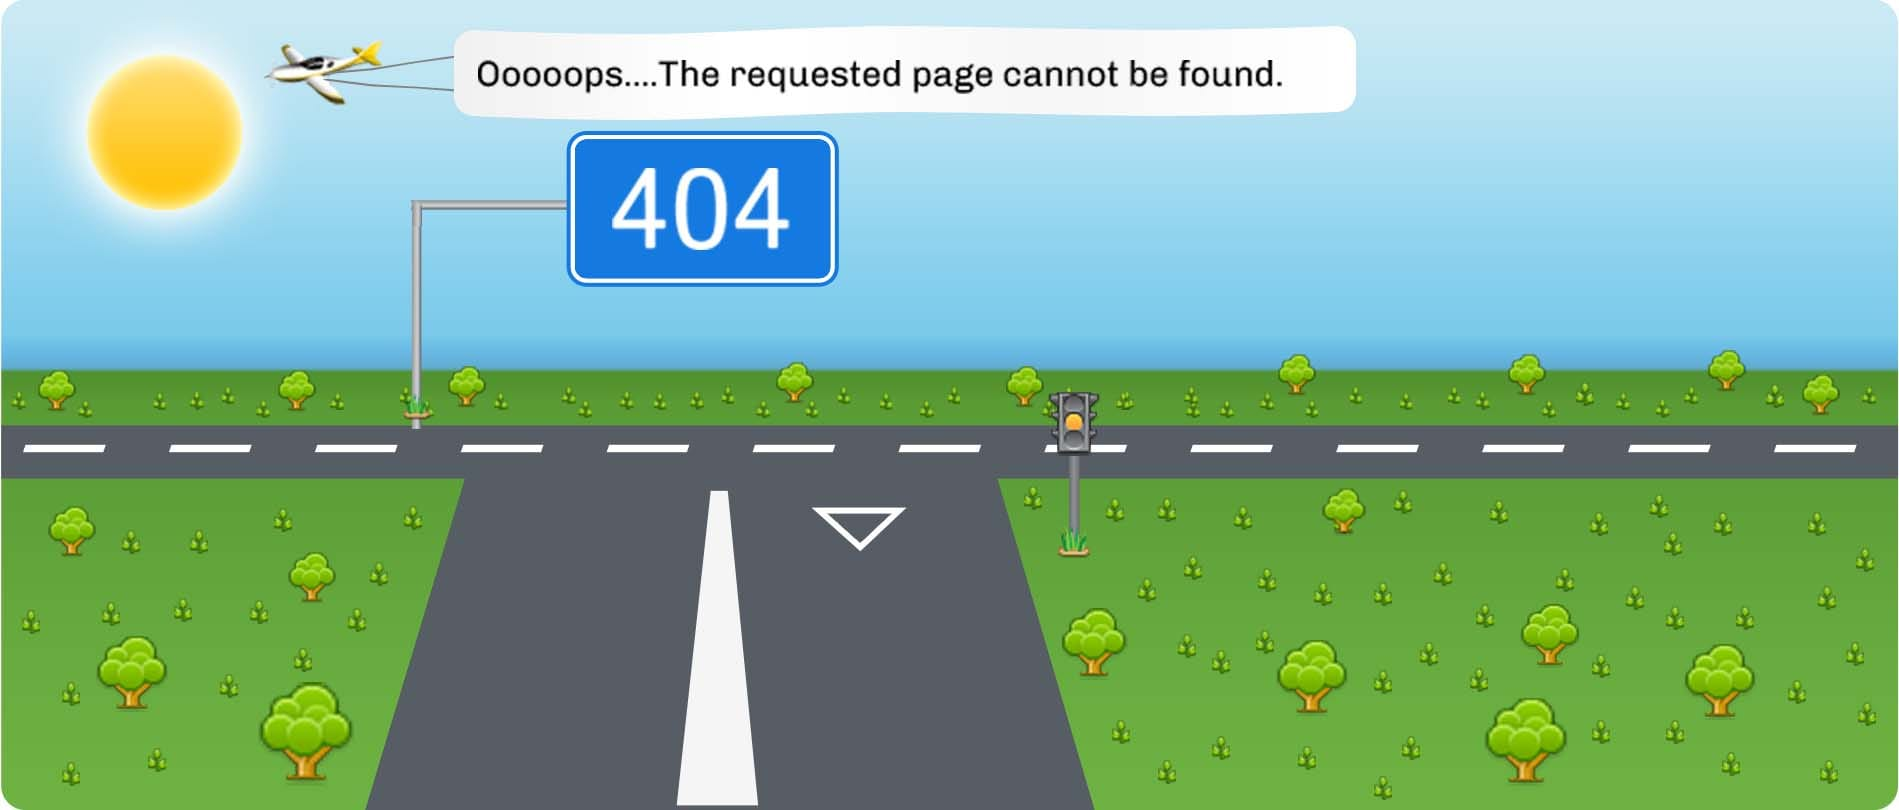 Oops! Page not found...